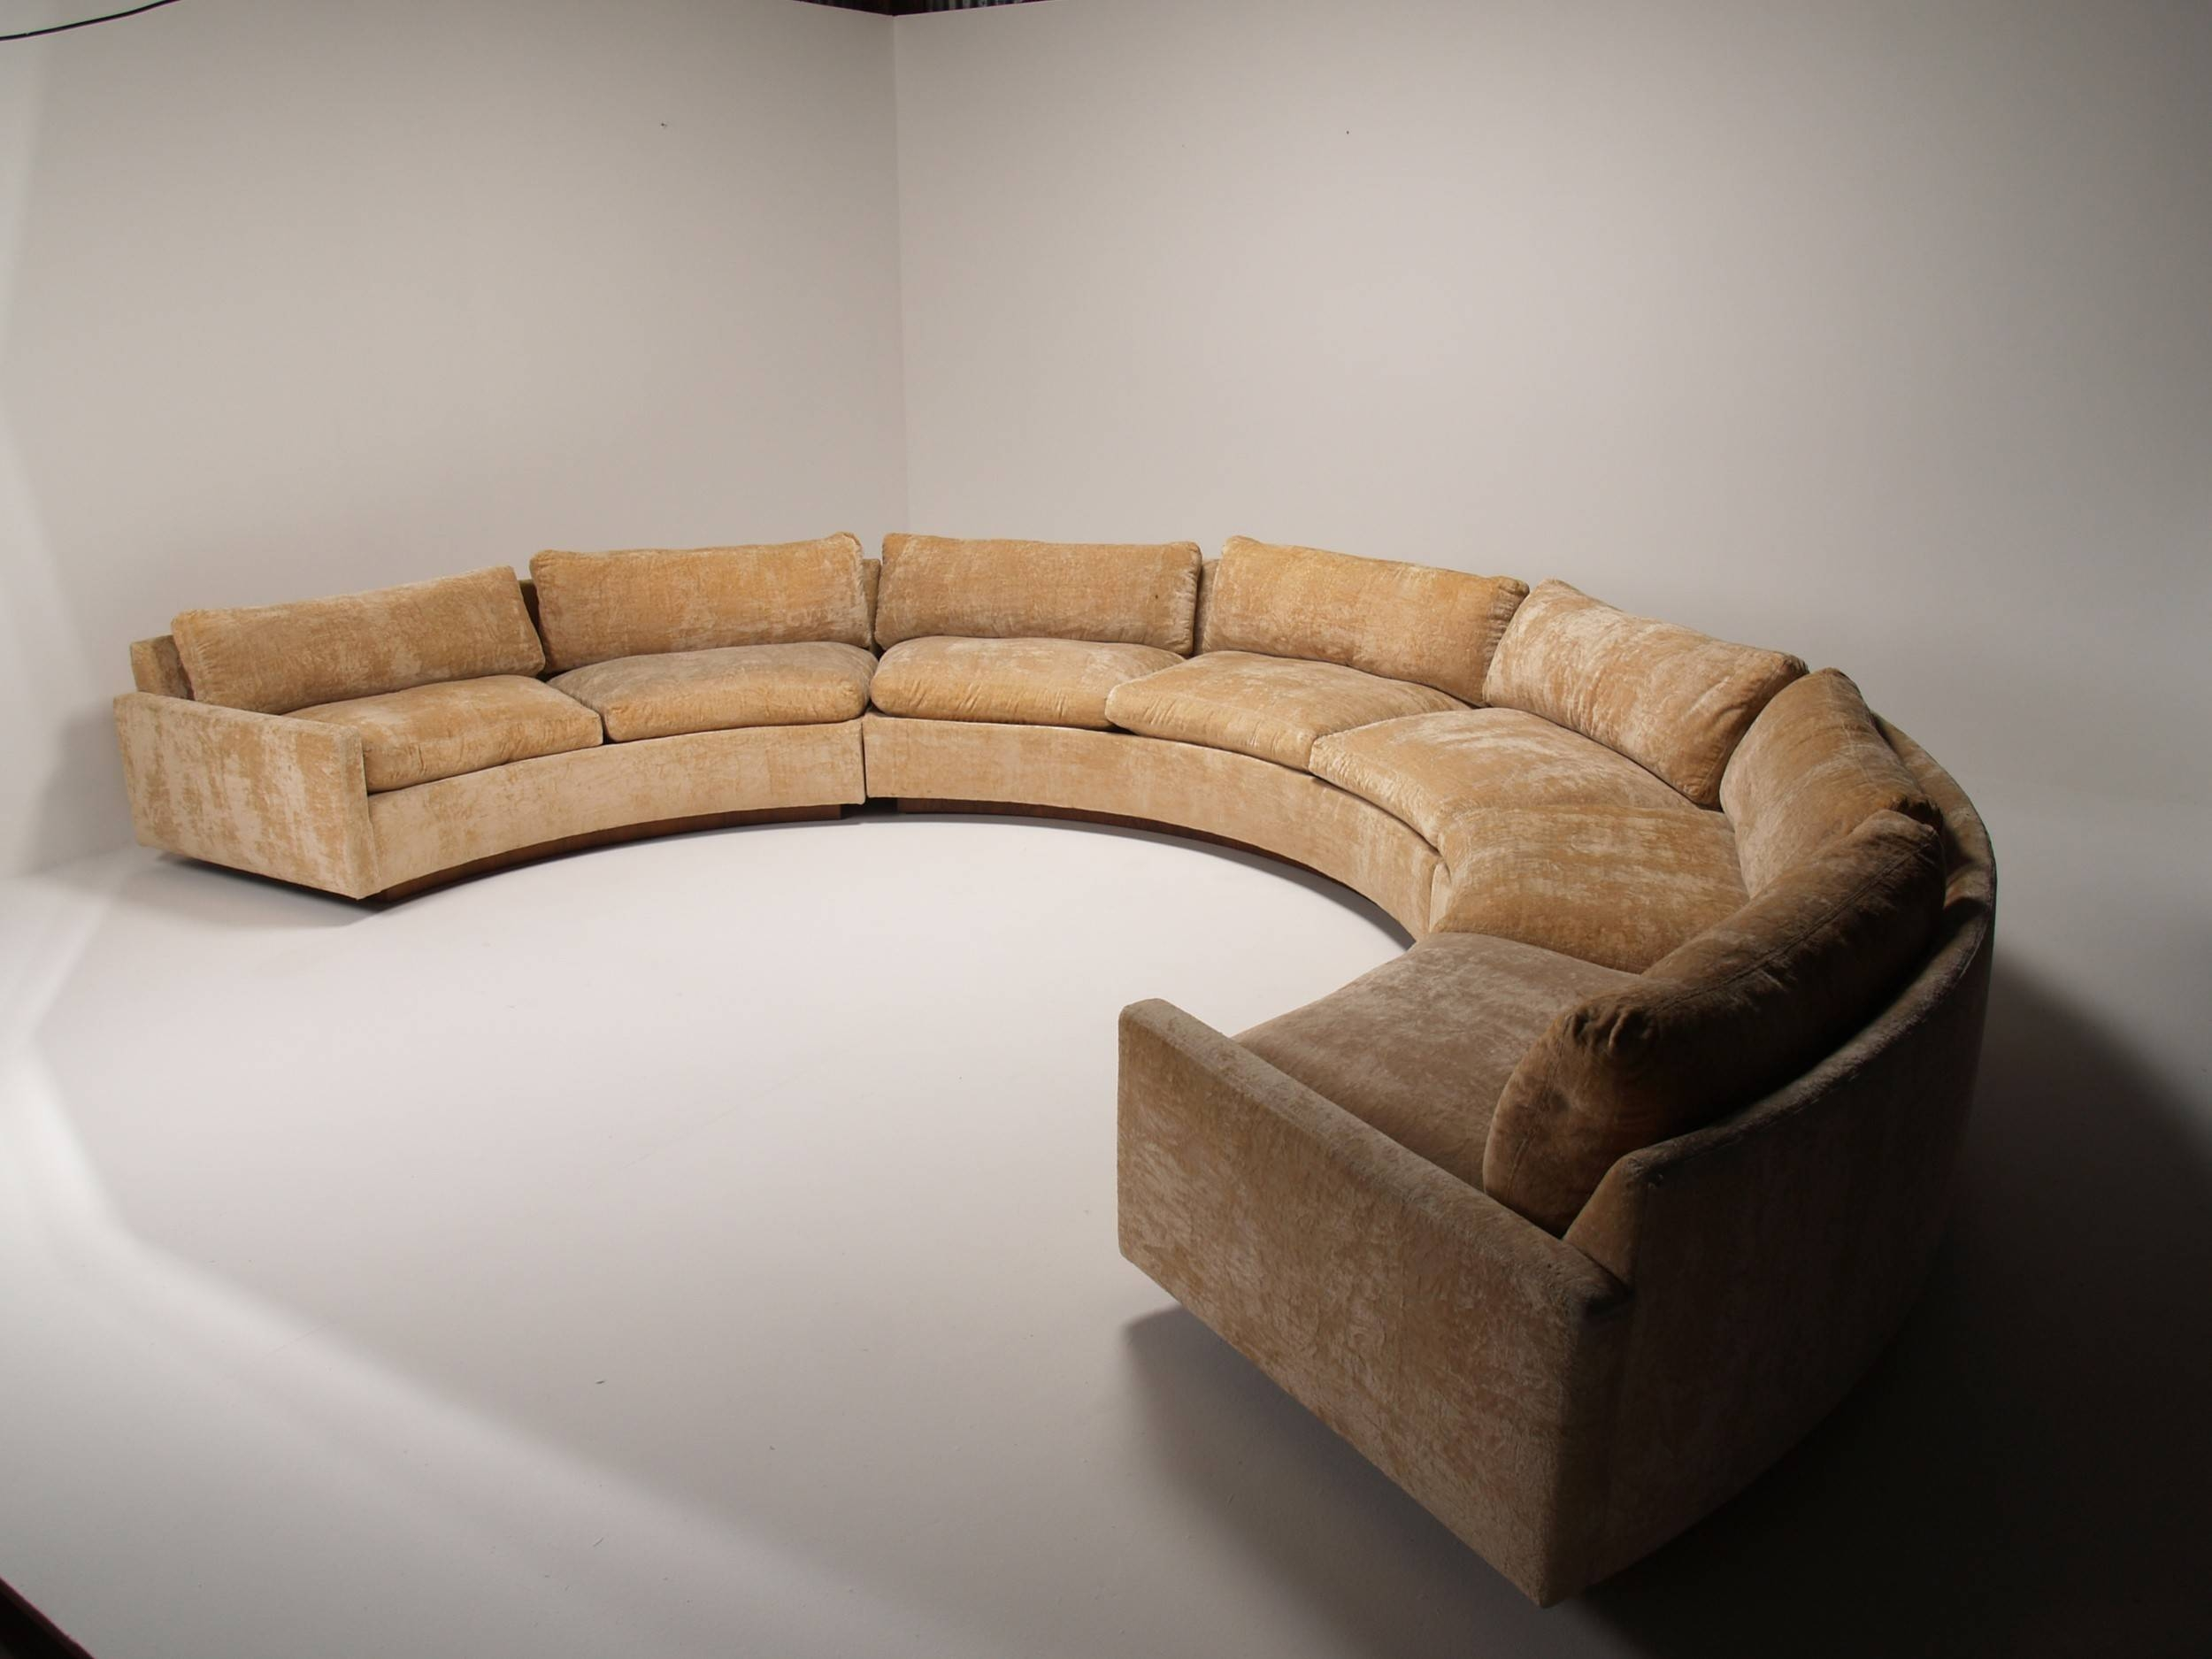 Round Sofas, Style Roundup Decorating With Round Sofas And Couches For Semi Round Sectional Sofas (View 11 of 15)